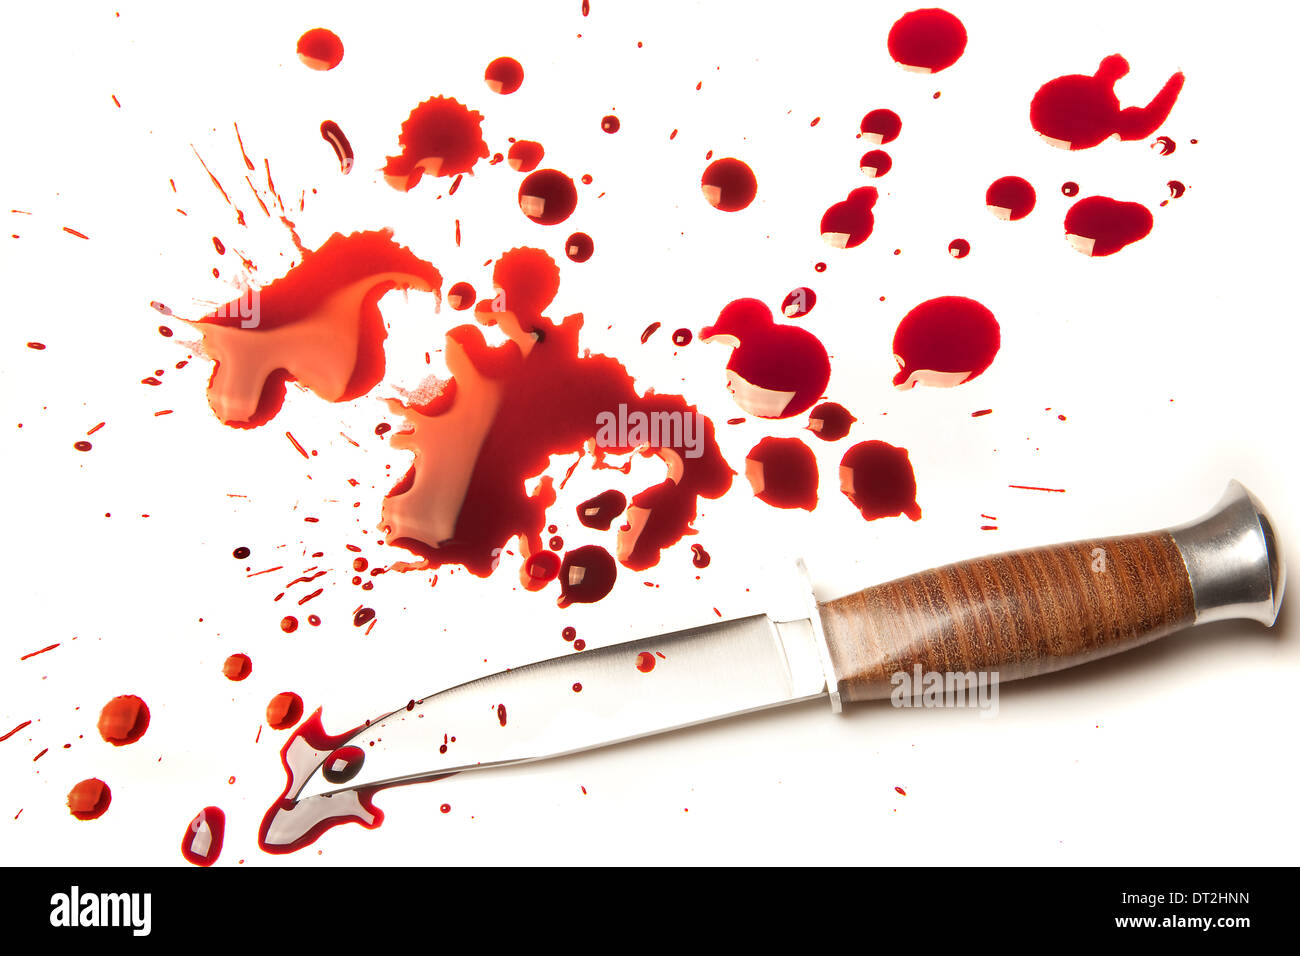 Isolated dagger with a splatter of red blood stains - Stock Image